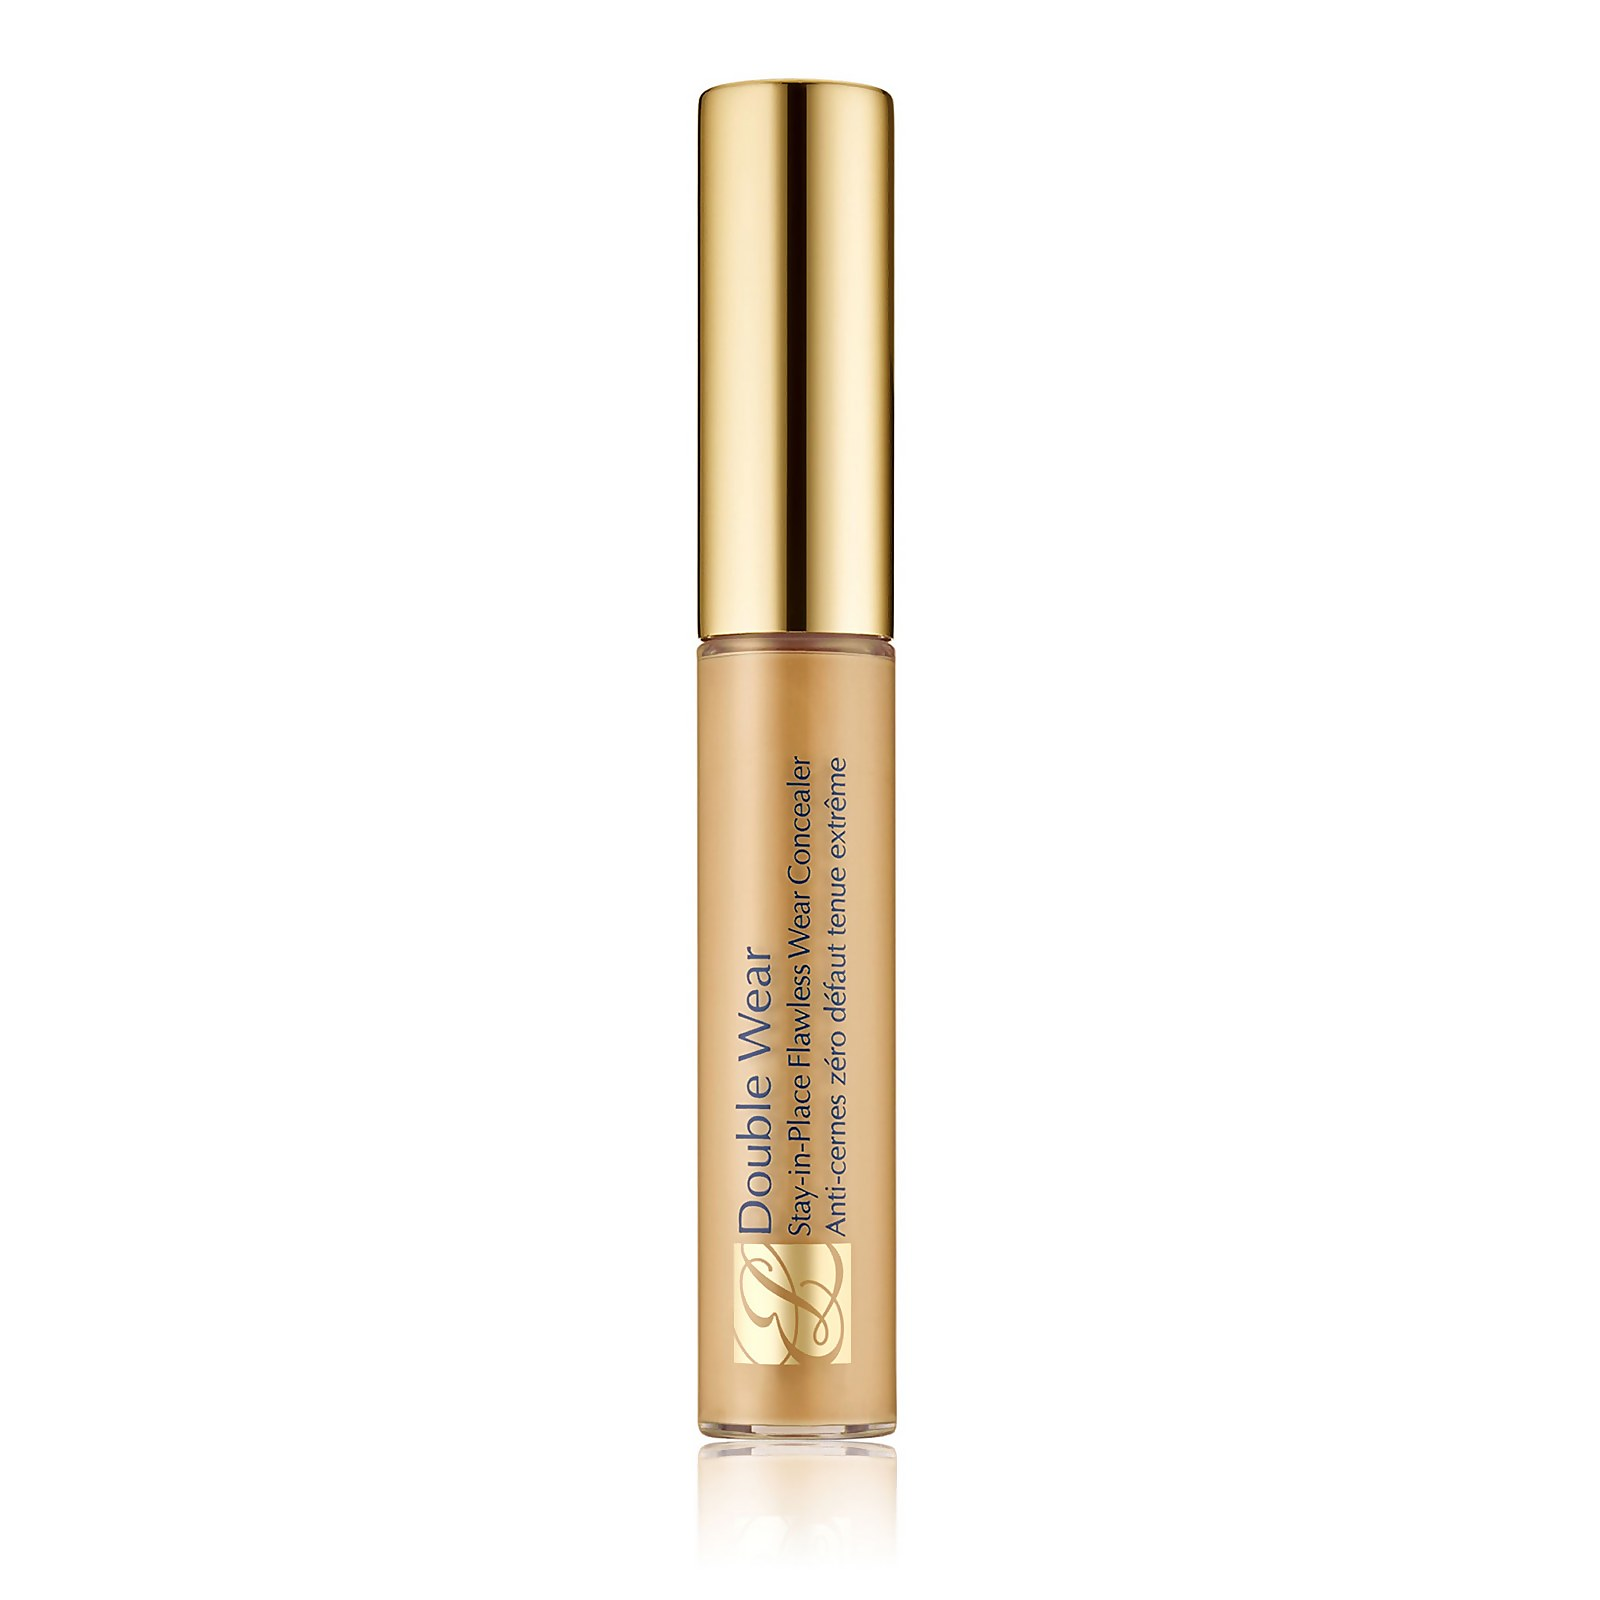 Estée Lauder Double Wear Stay-in-Place Flawless Wear Concealer 7ml (Various Shades) - 3C Medium